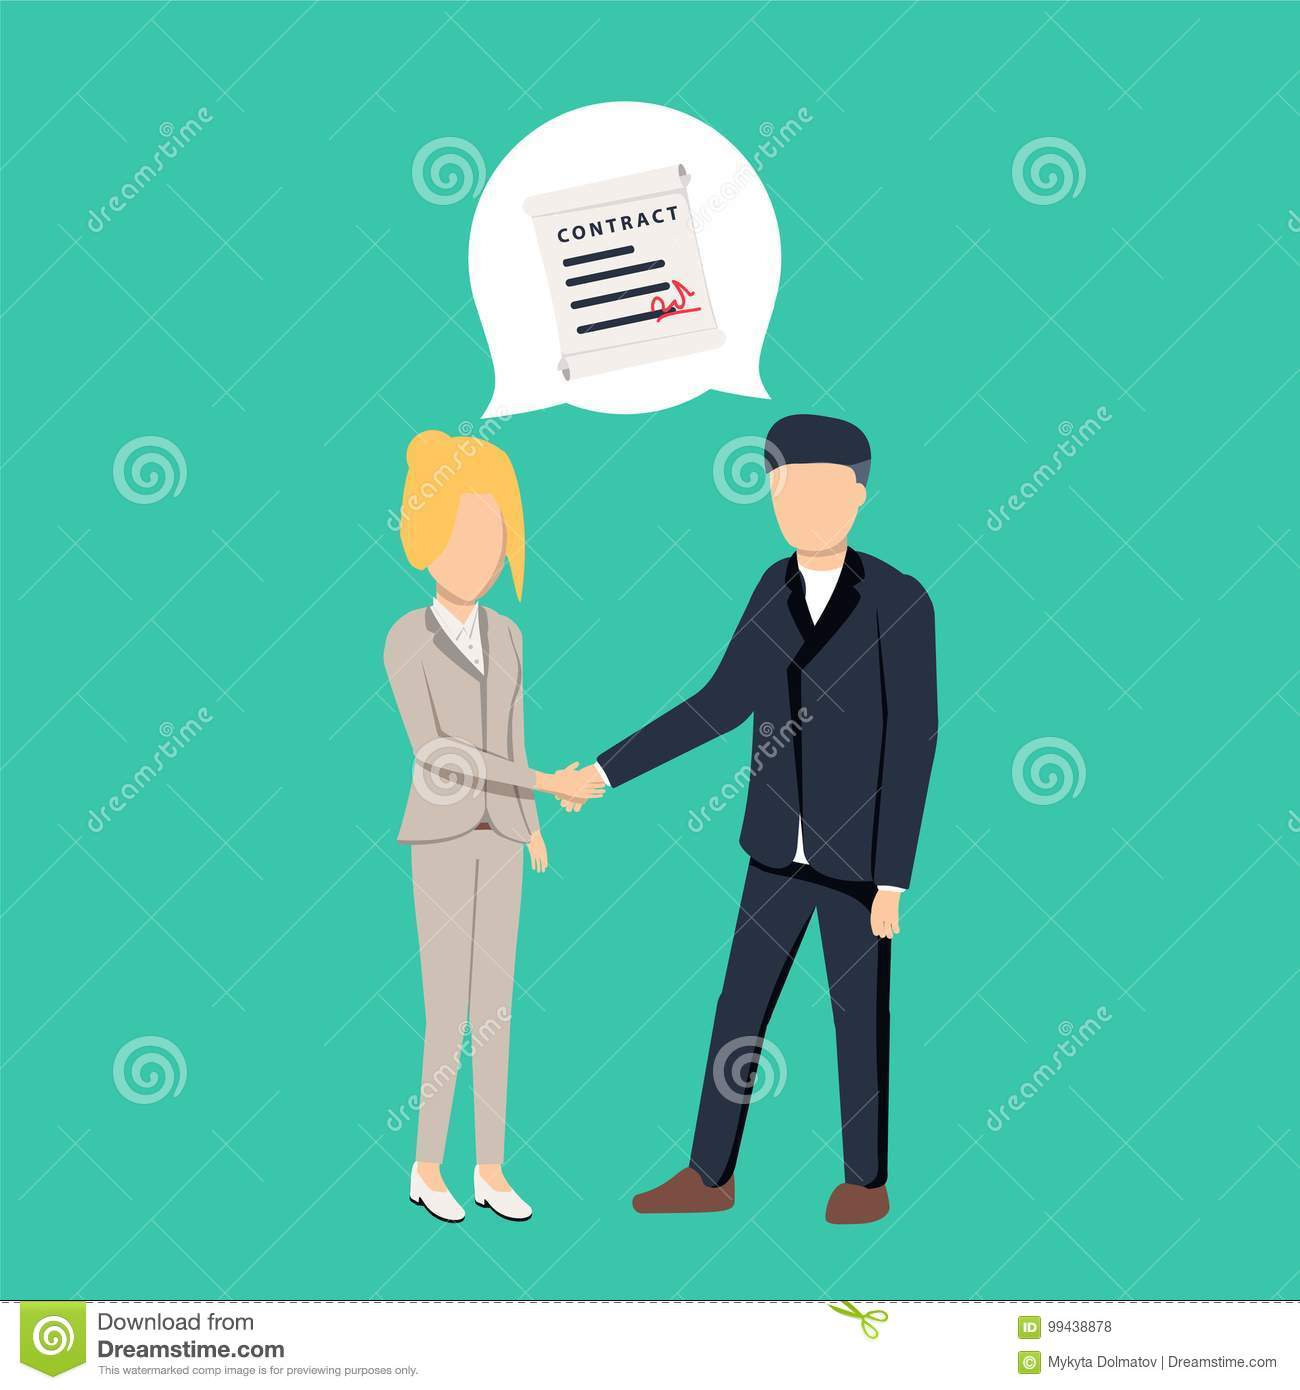 Businessman and businesswoman shaking hand and agree to sign contract after successful business discussion.